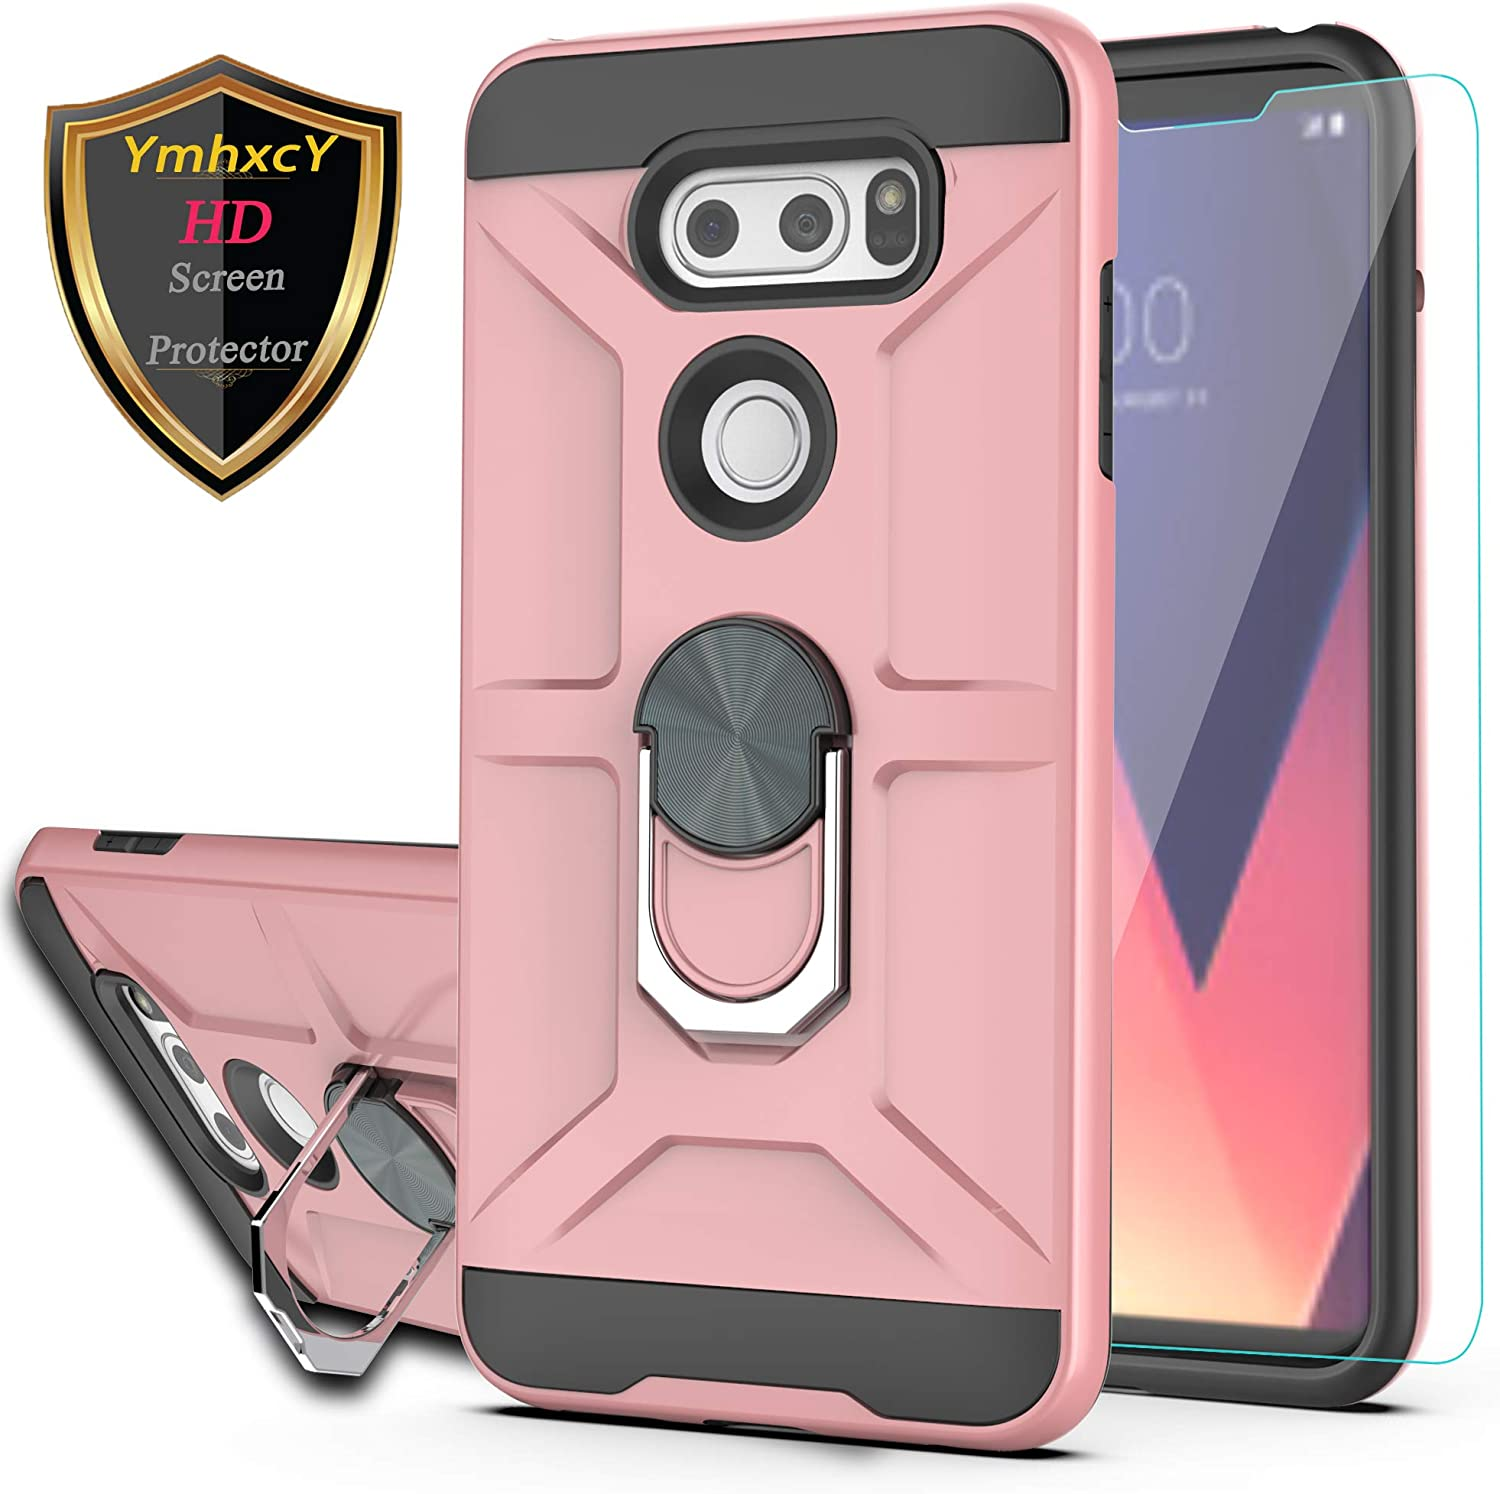 LG V35 ThinQ Case LG V30 Case LG V30 Plus/ V30S ThinQ/ V35 Case with HD Screen Protector YmhxcY 360 Degree Rotating Ring Kickstand Holder Dual Layers of Shockproof Phone Case for LG V30-ZS Rose Gold